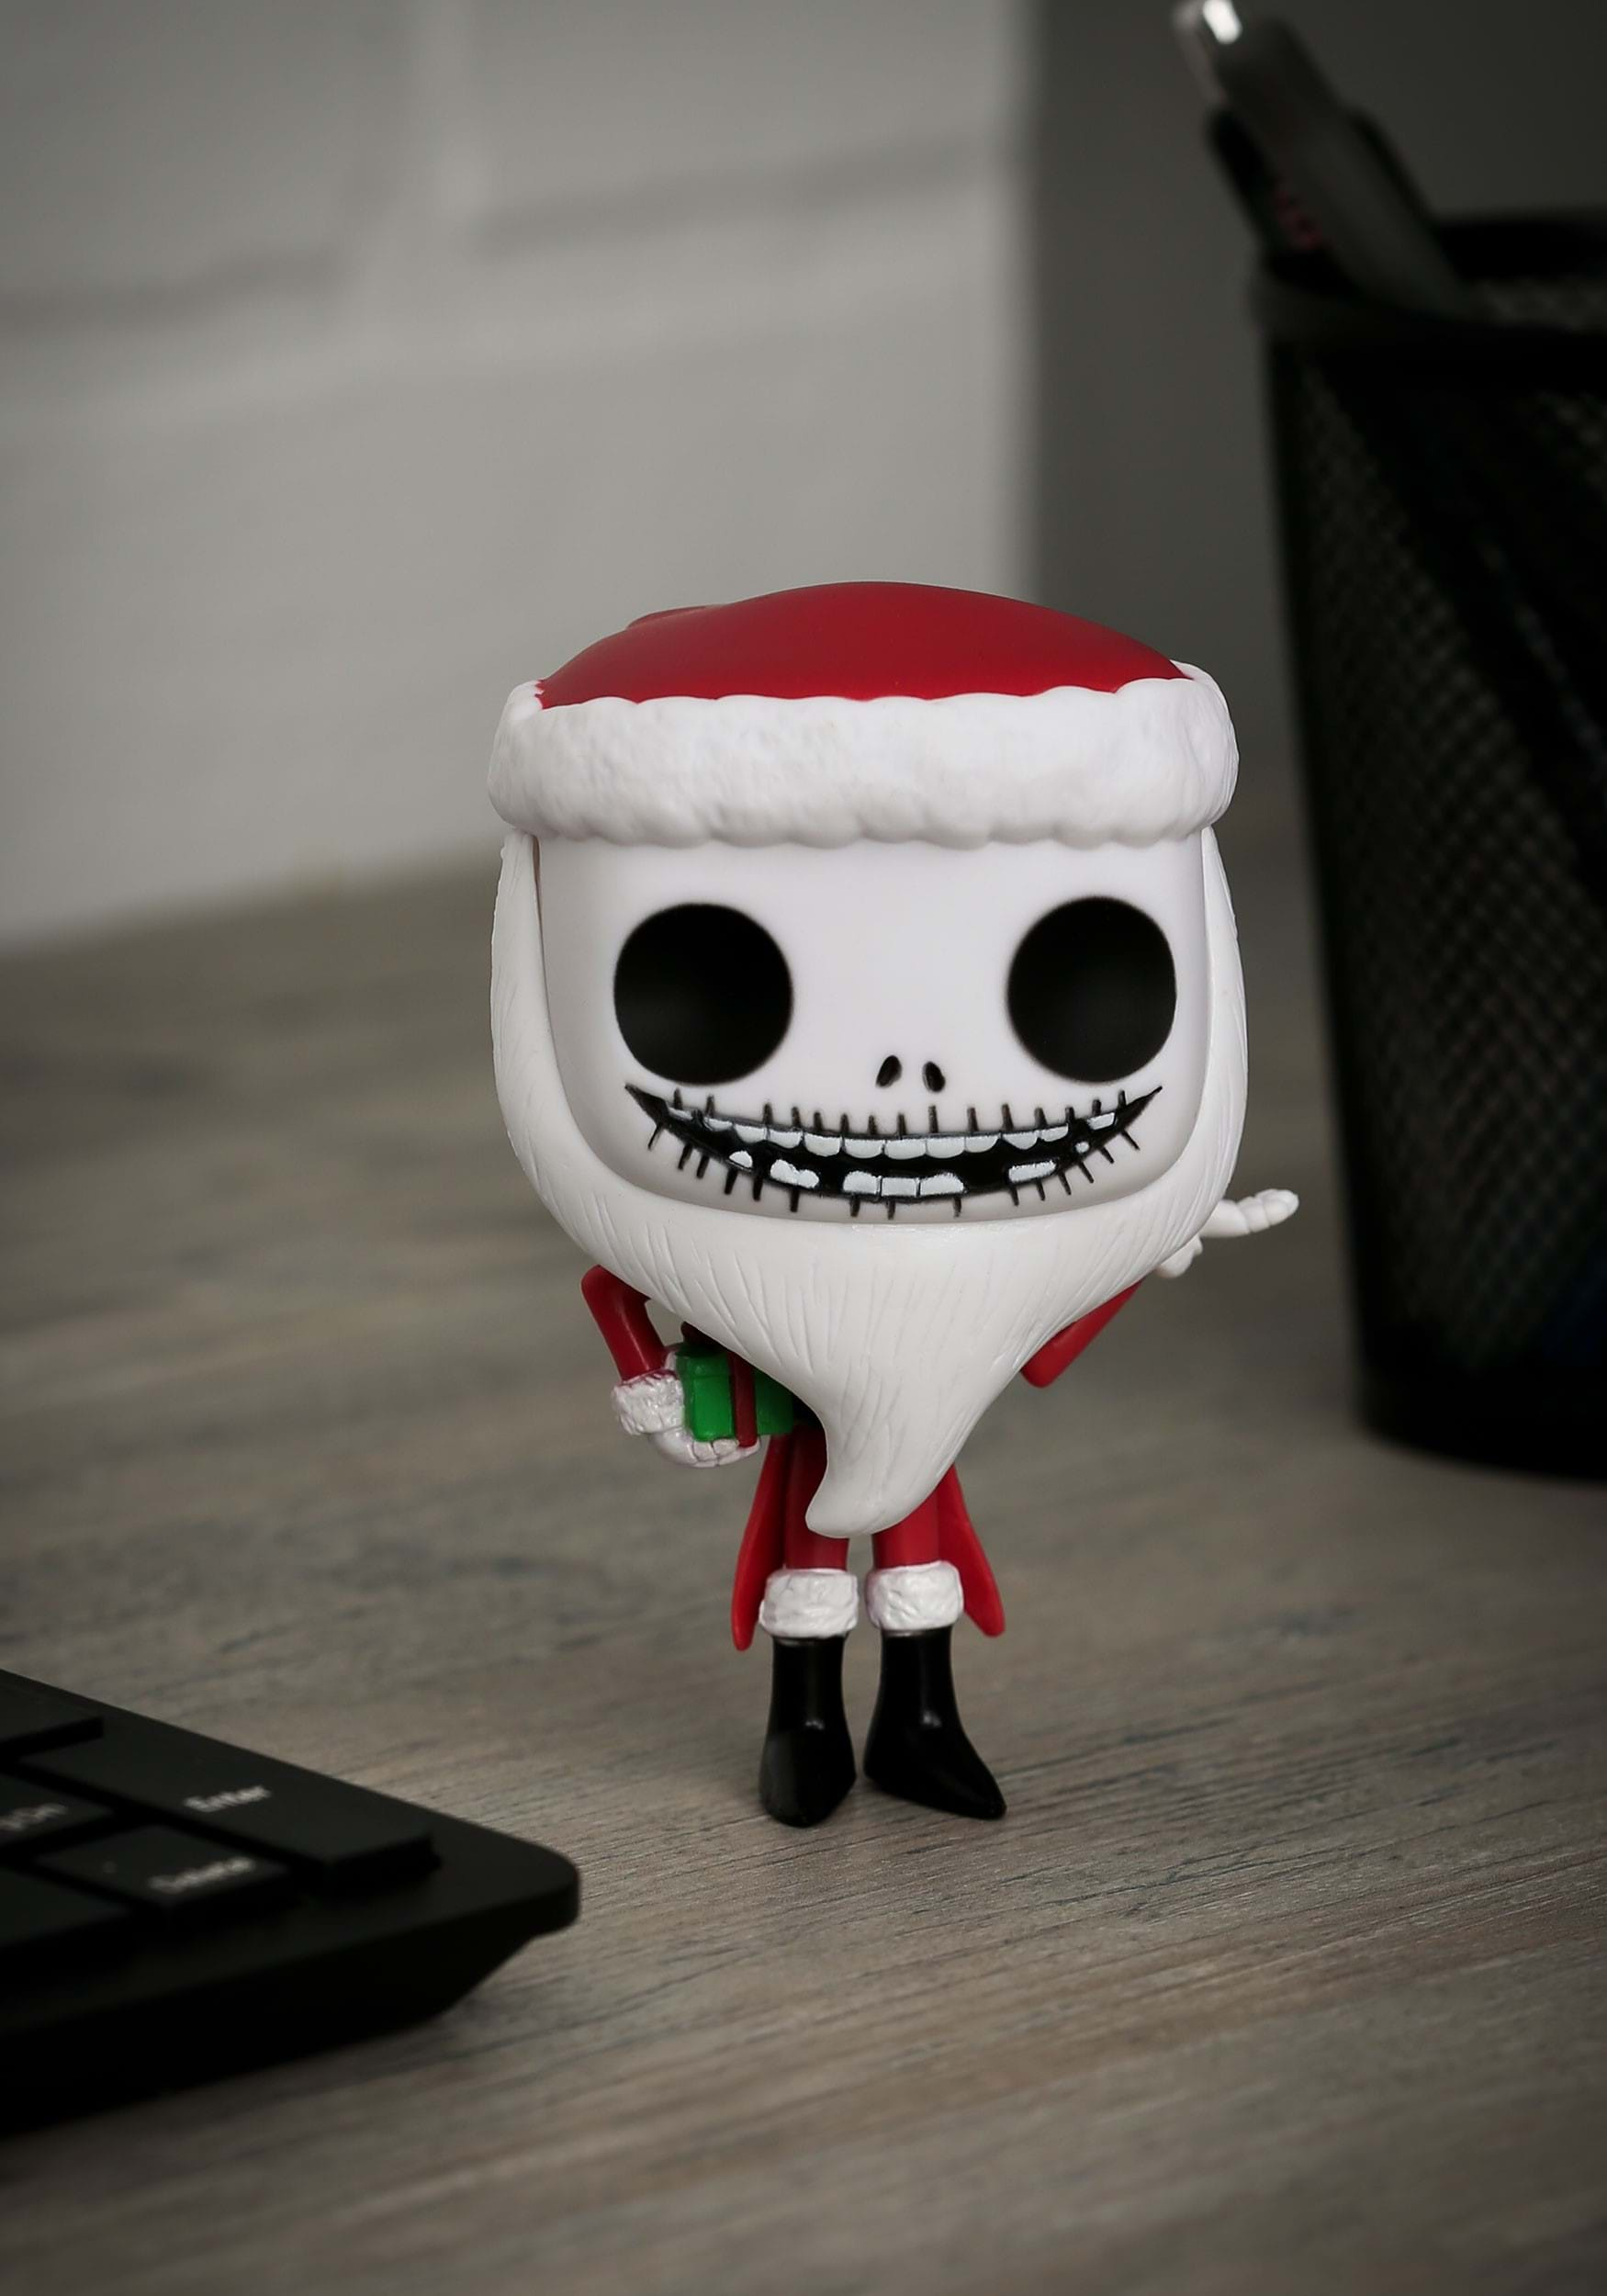 POP! Santa Jack Skellington Vinyl Figure FN3289